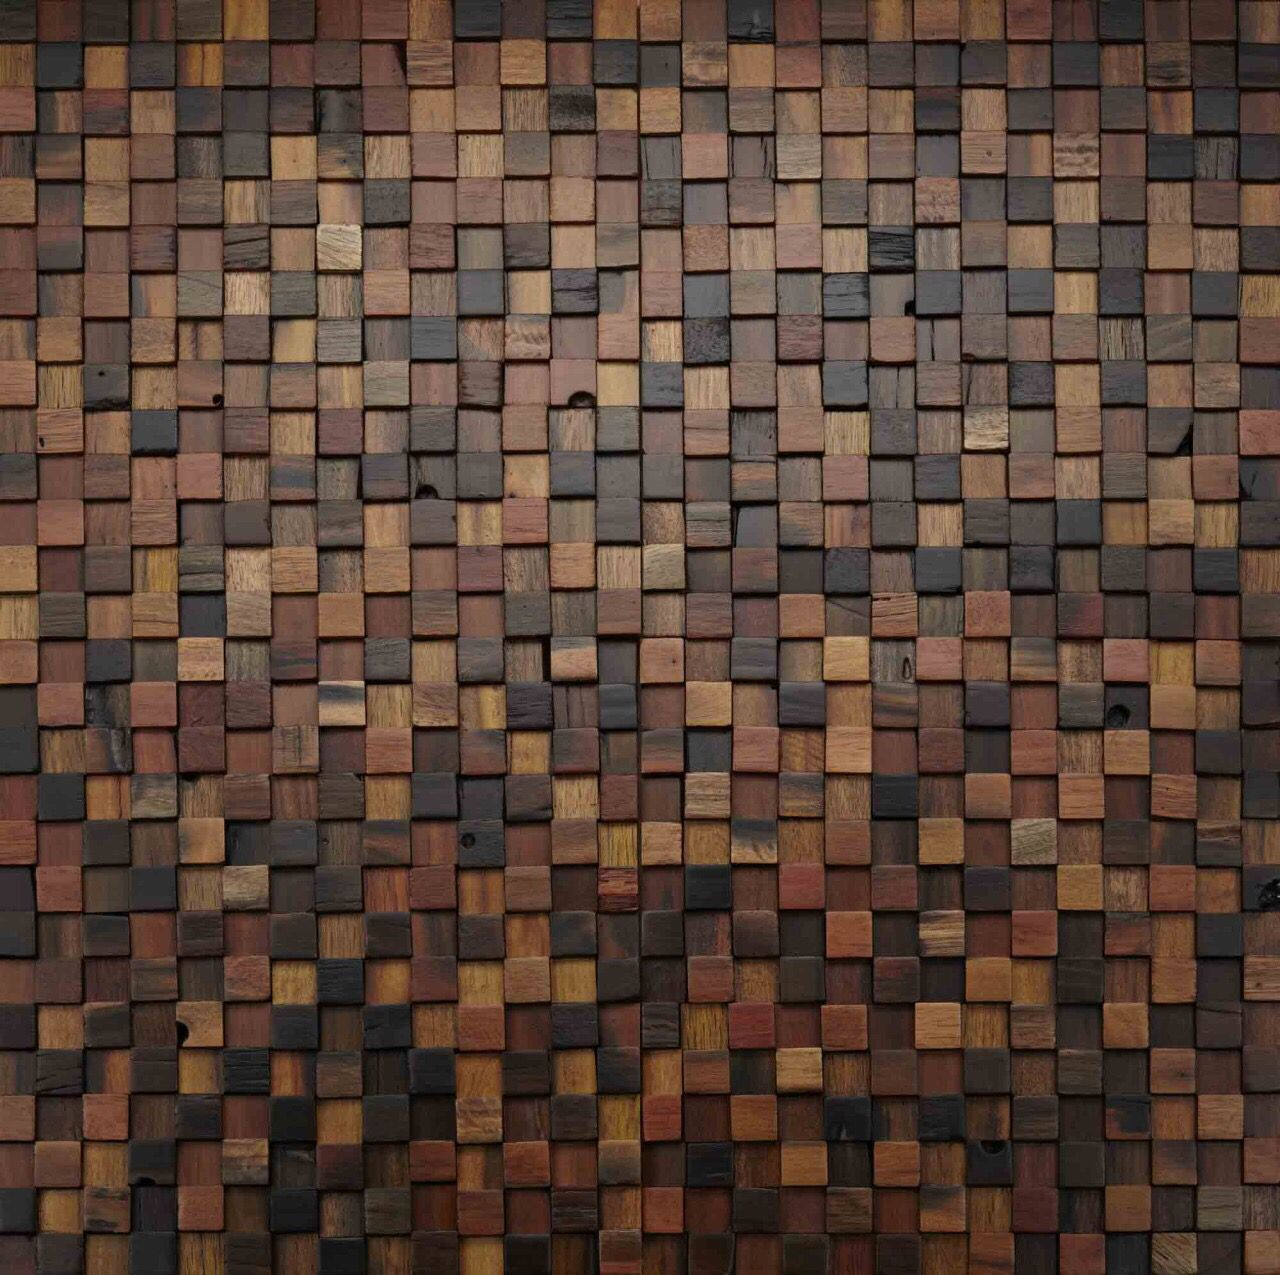 Wooden Wall Decor, Wood Wall Covering, Wood